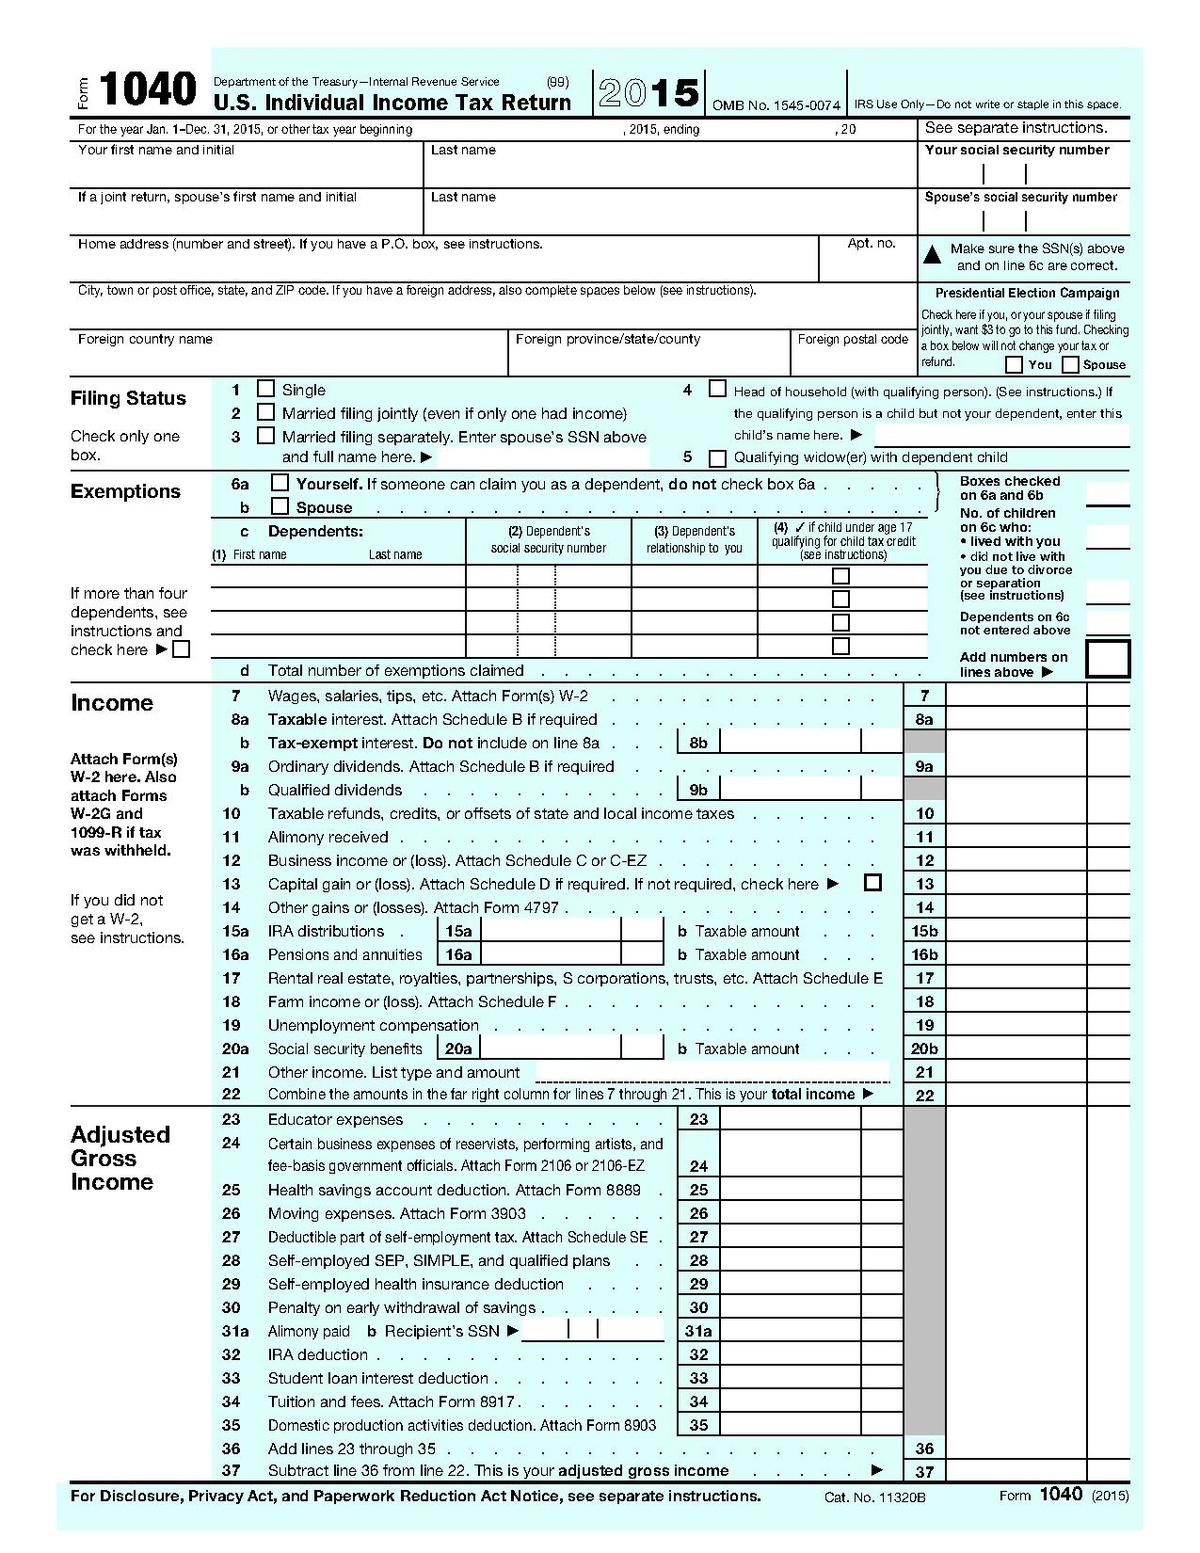 worksheet Eitc Worksheet eic worksheet b in the form 1040 instructions wikipedia